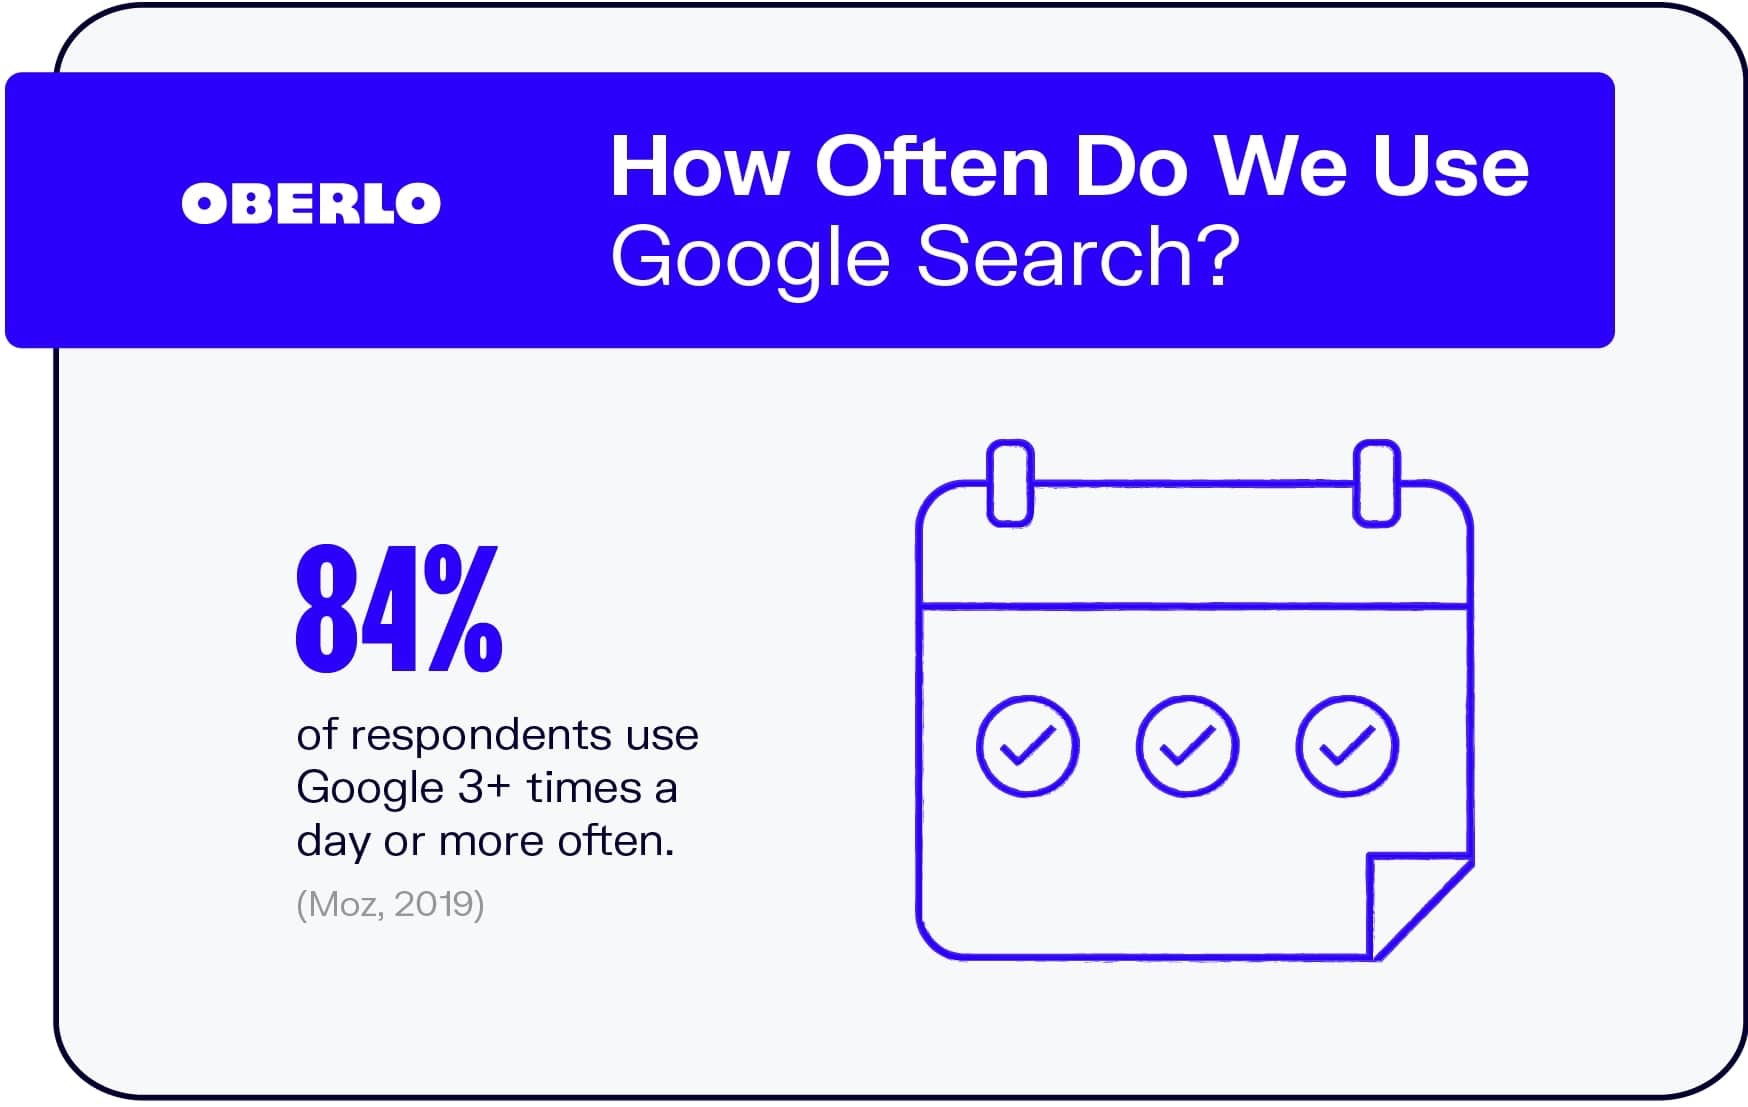 How Often Do We Use Google Search?